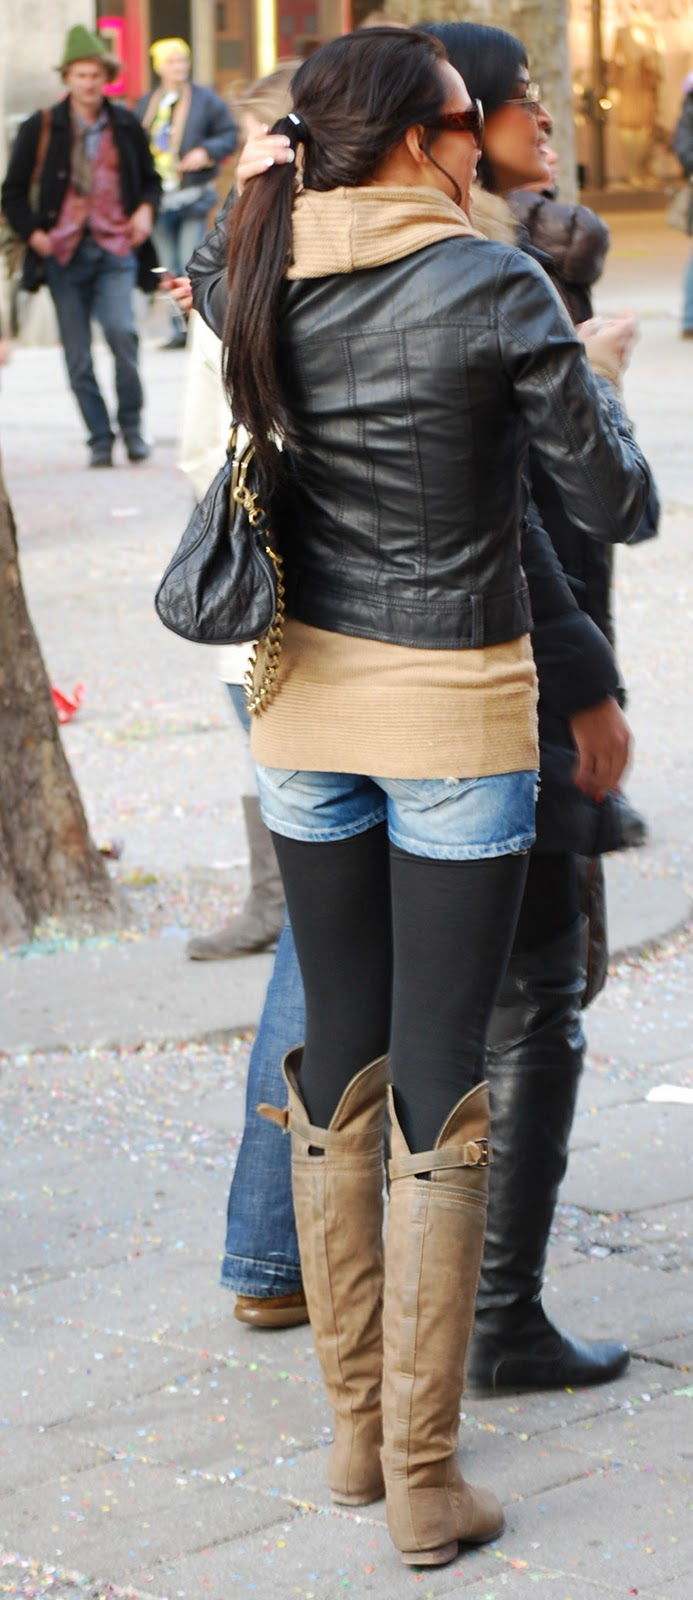 Jeans and Boots Streetshots Girls in Jeans u0026 Boots or Overknees Part 2 - 18.03.2011